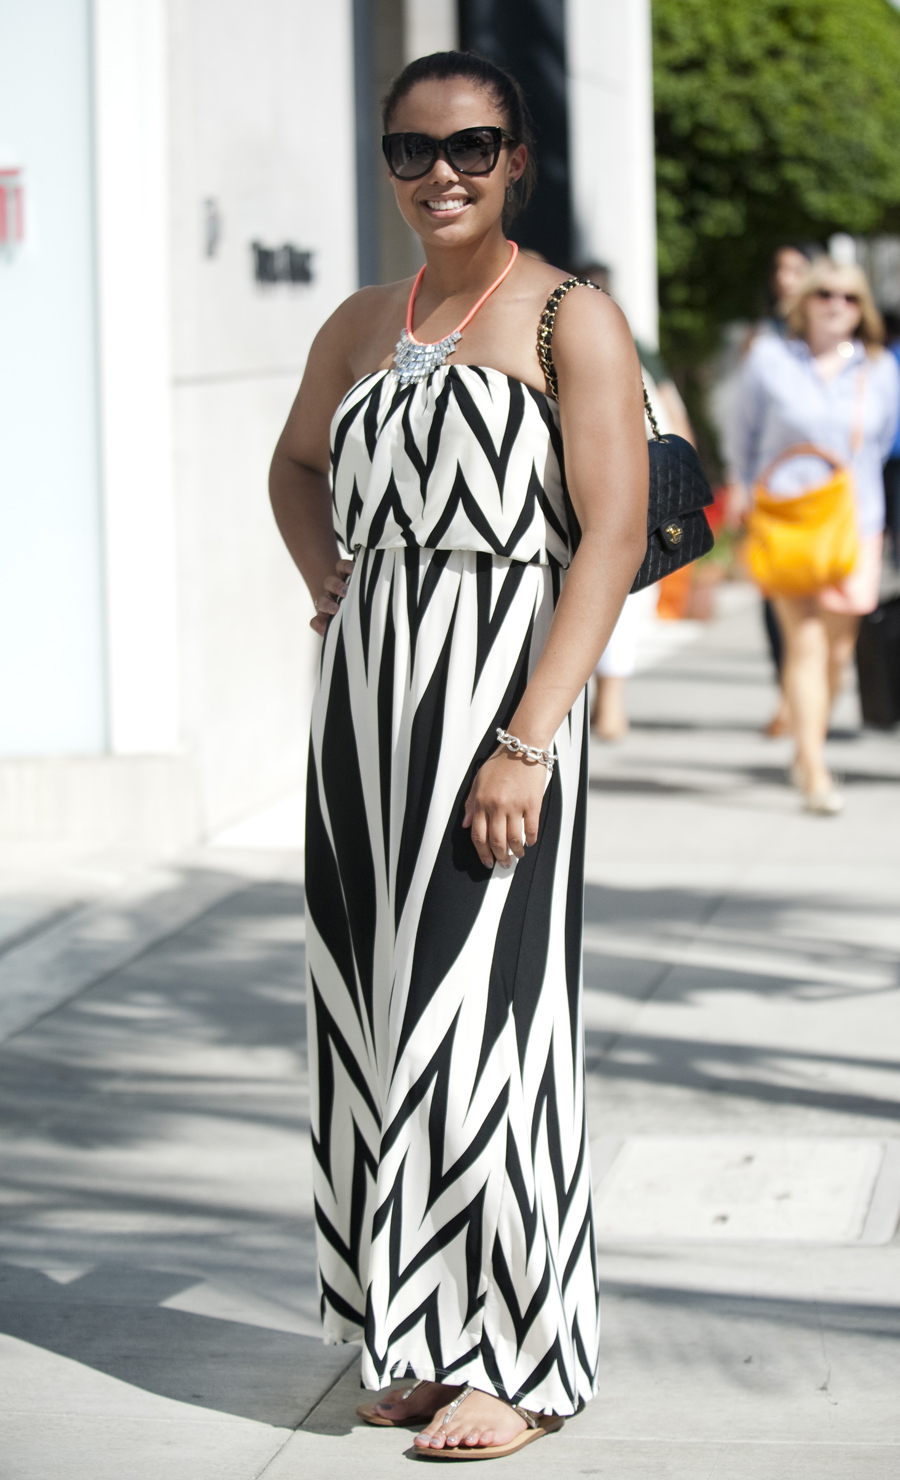 Danielle Kennedy, 28, wears a chevron-like Forever 21 maxi dress and necklace.